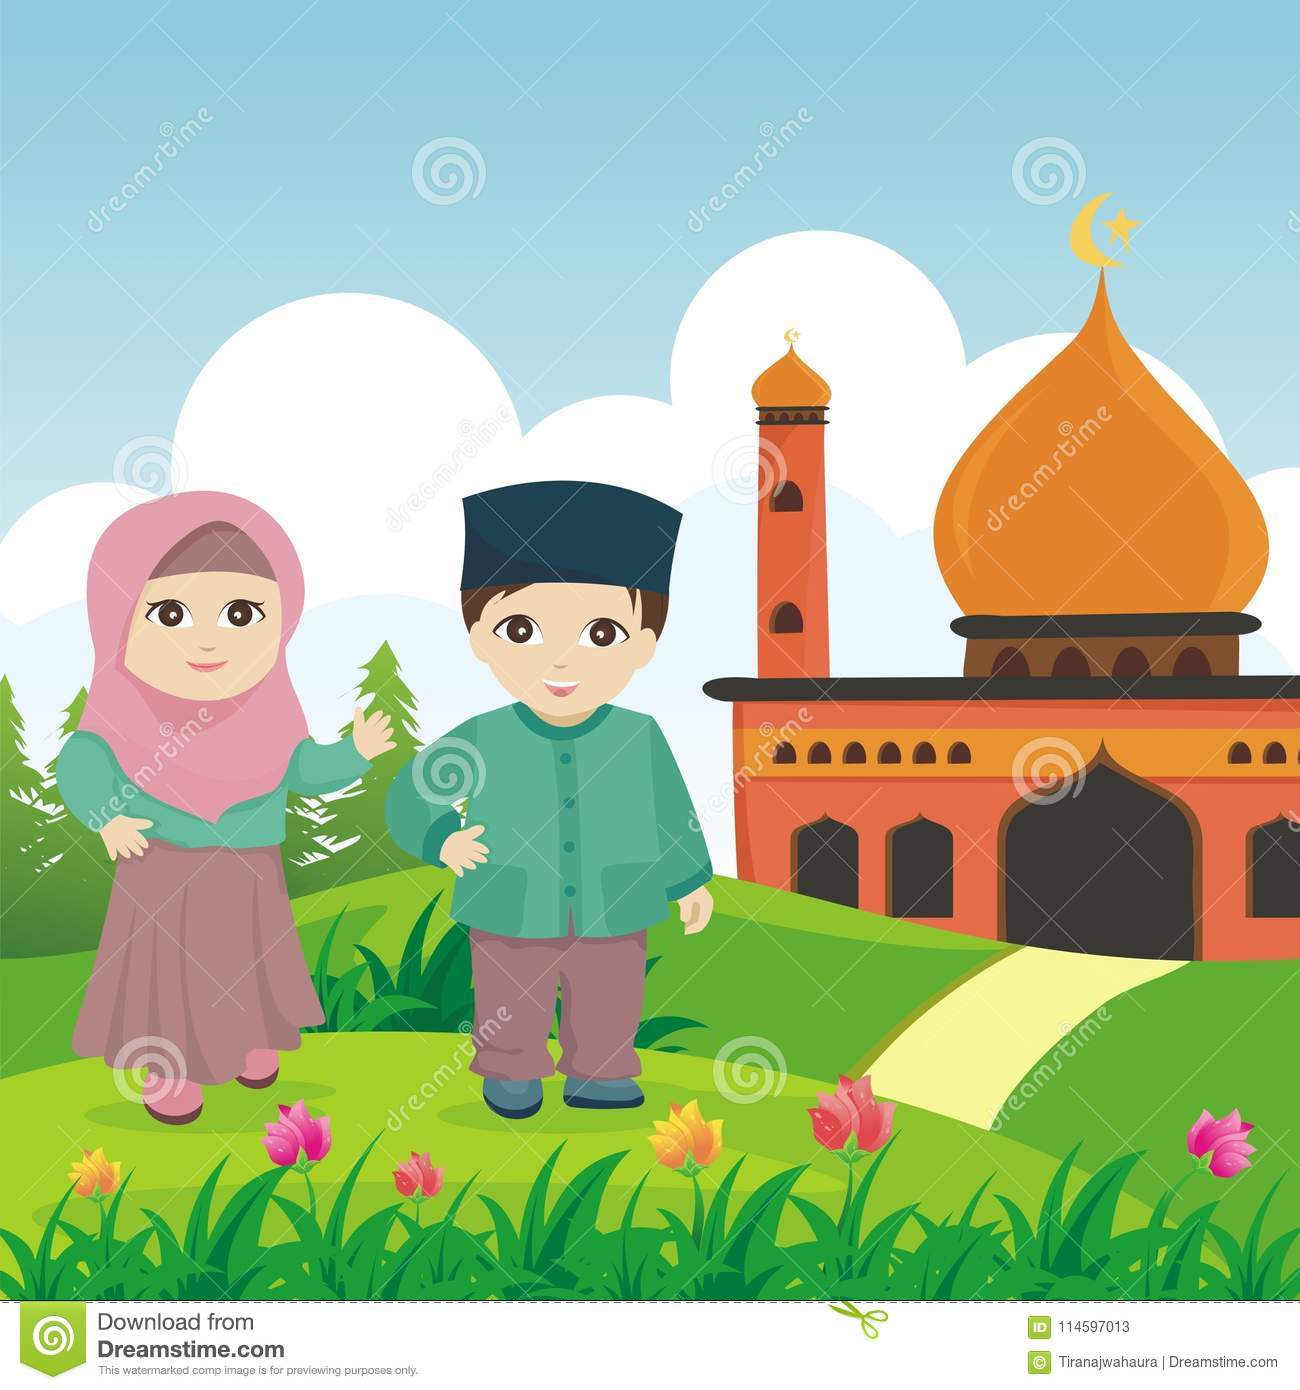 Cartoon islamic kid with mosque and landscape